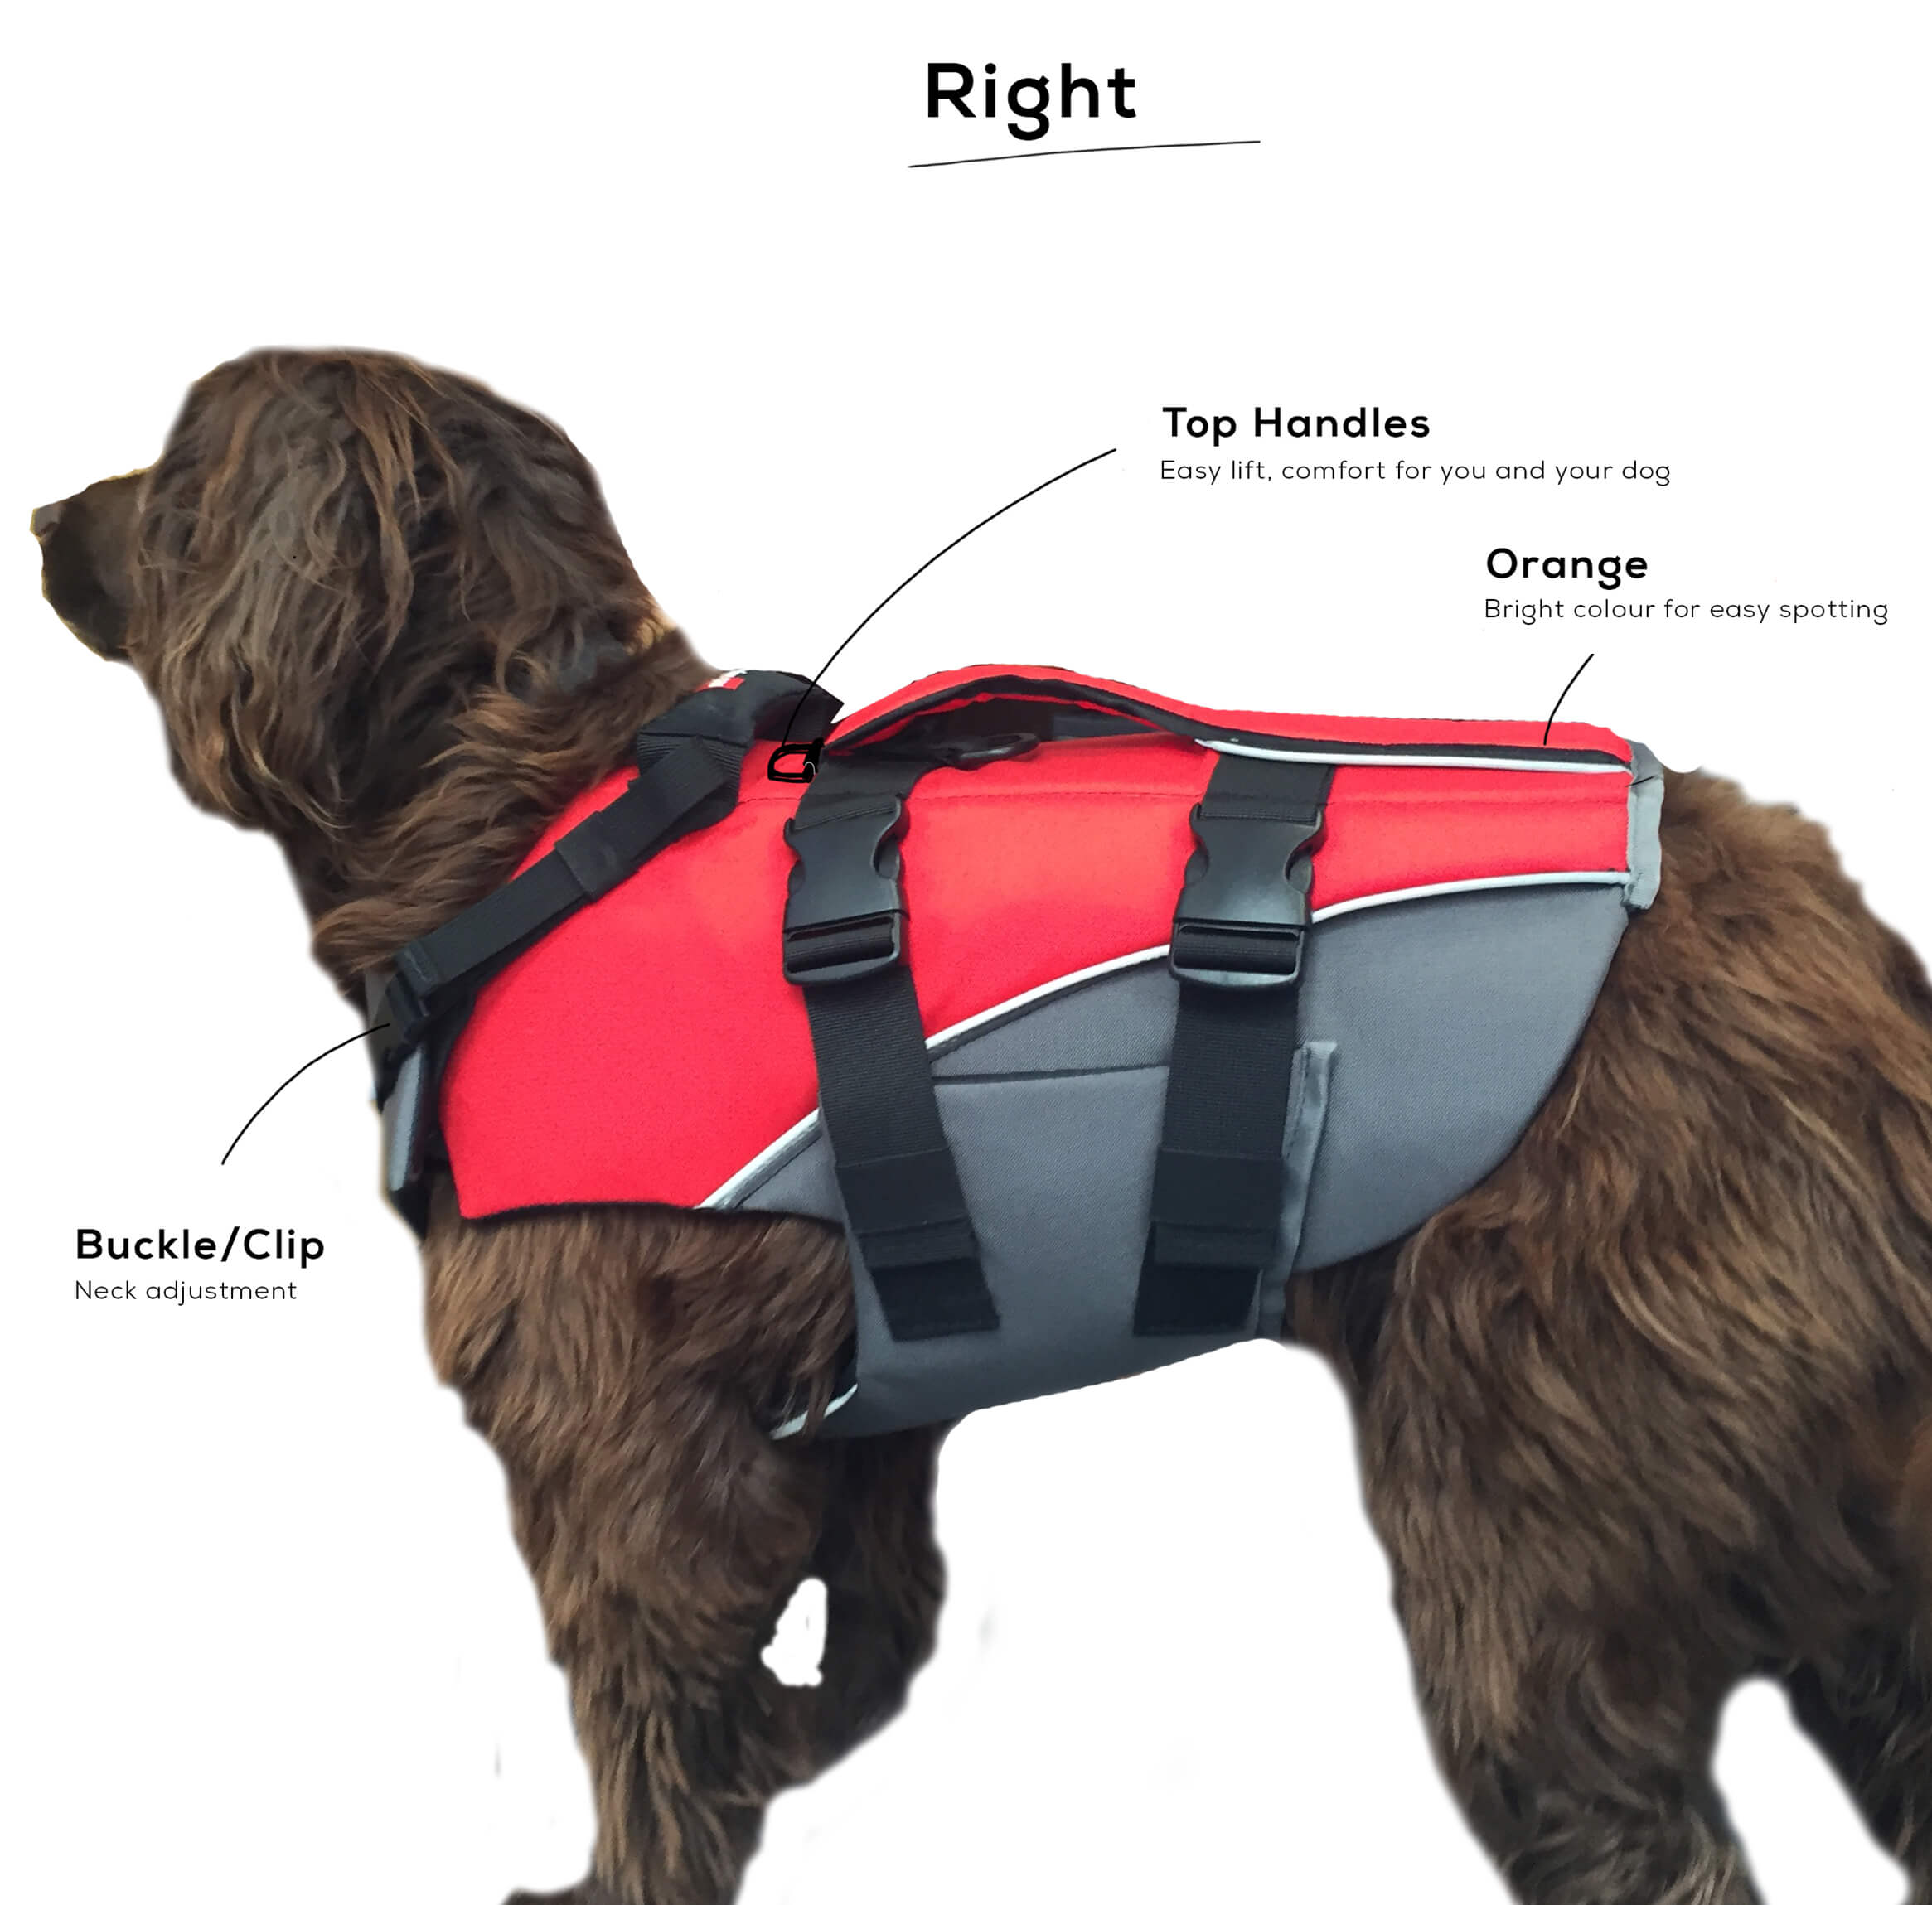 Red Original Dog Buoyancy Aid From The Right